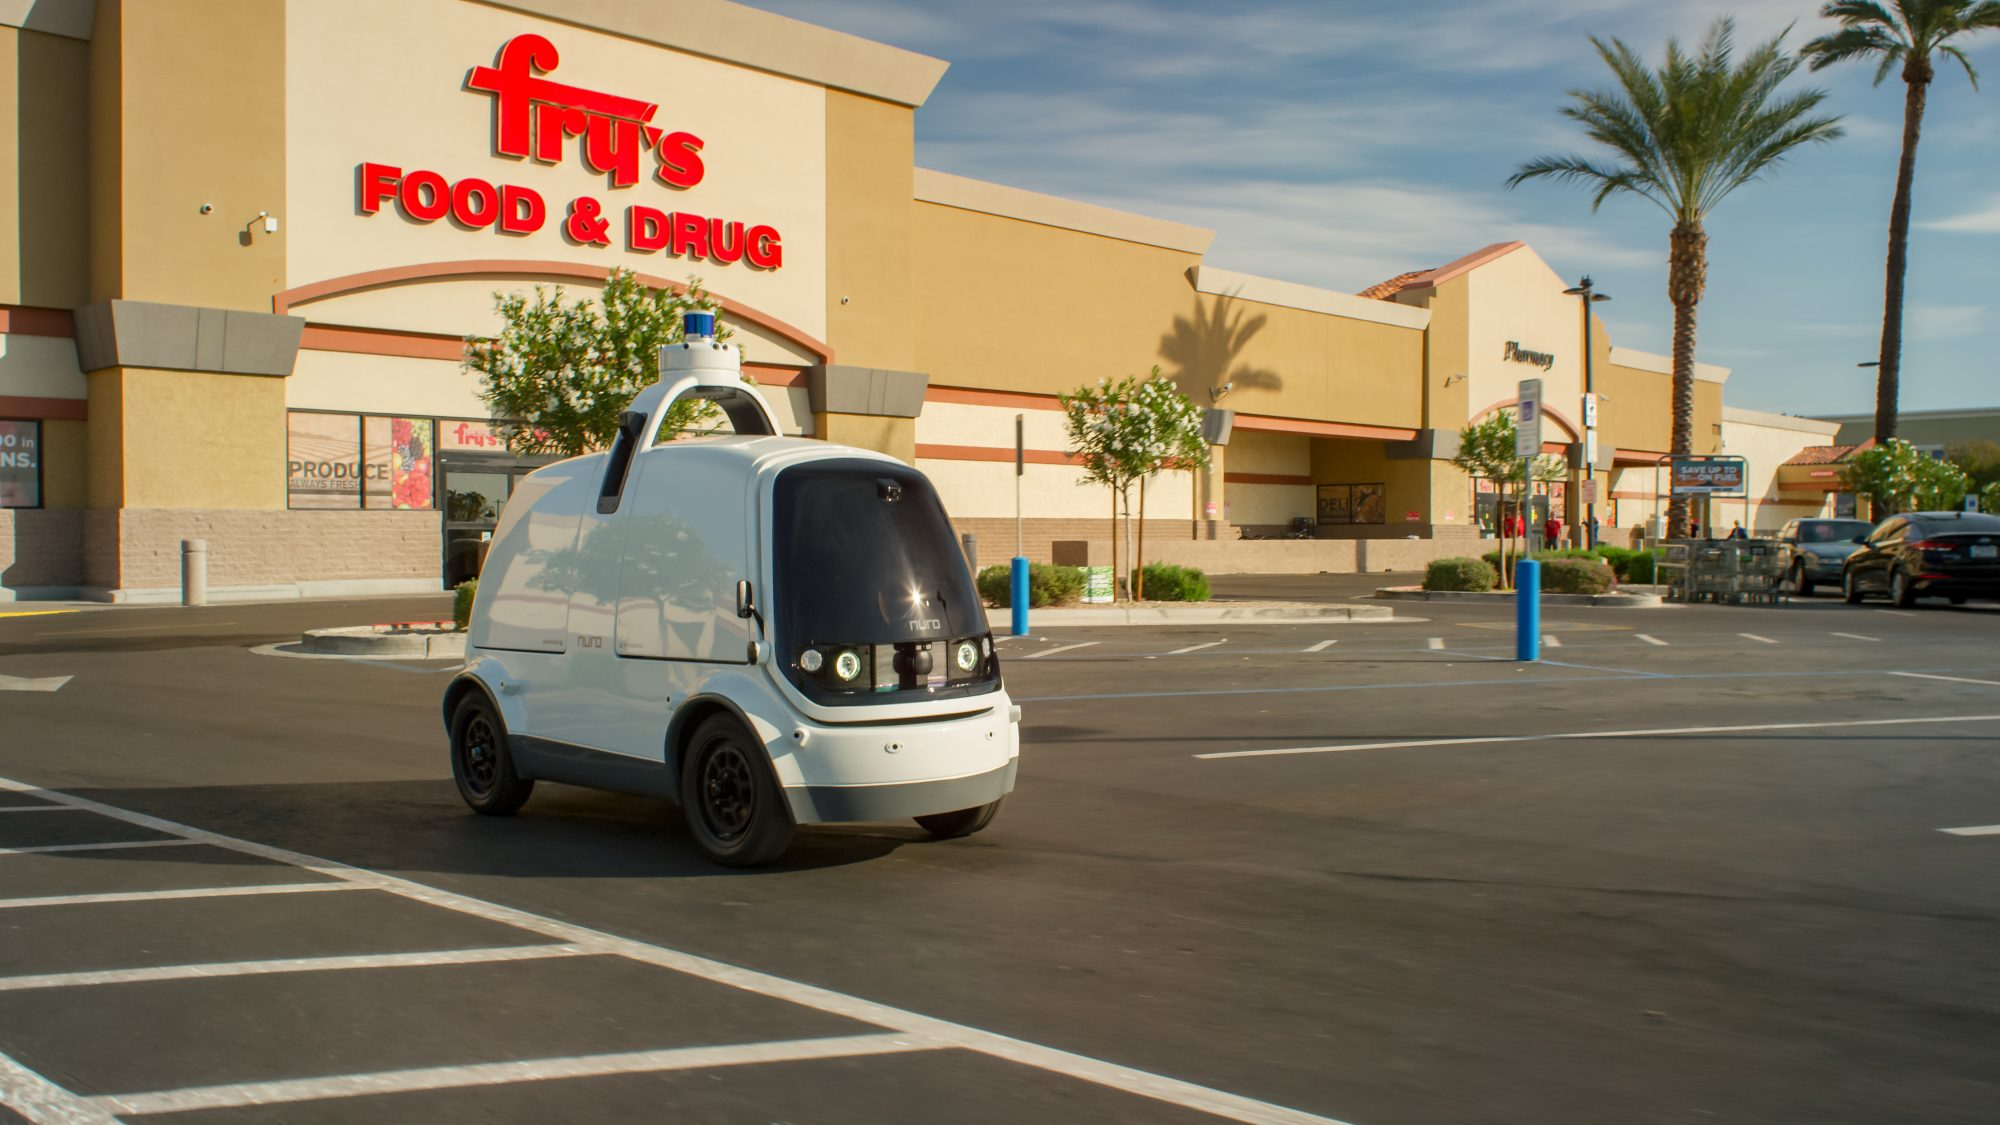 techcrunch.com - Megan Rose Dickey - Nuro deploys autonomous delivery cars without safety drivers